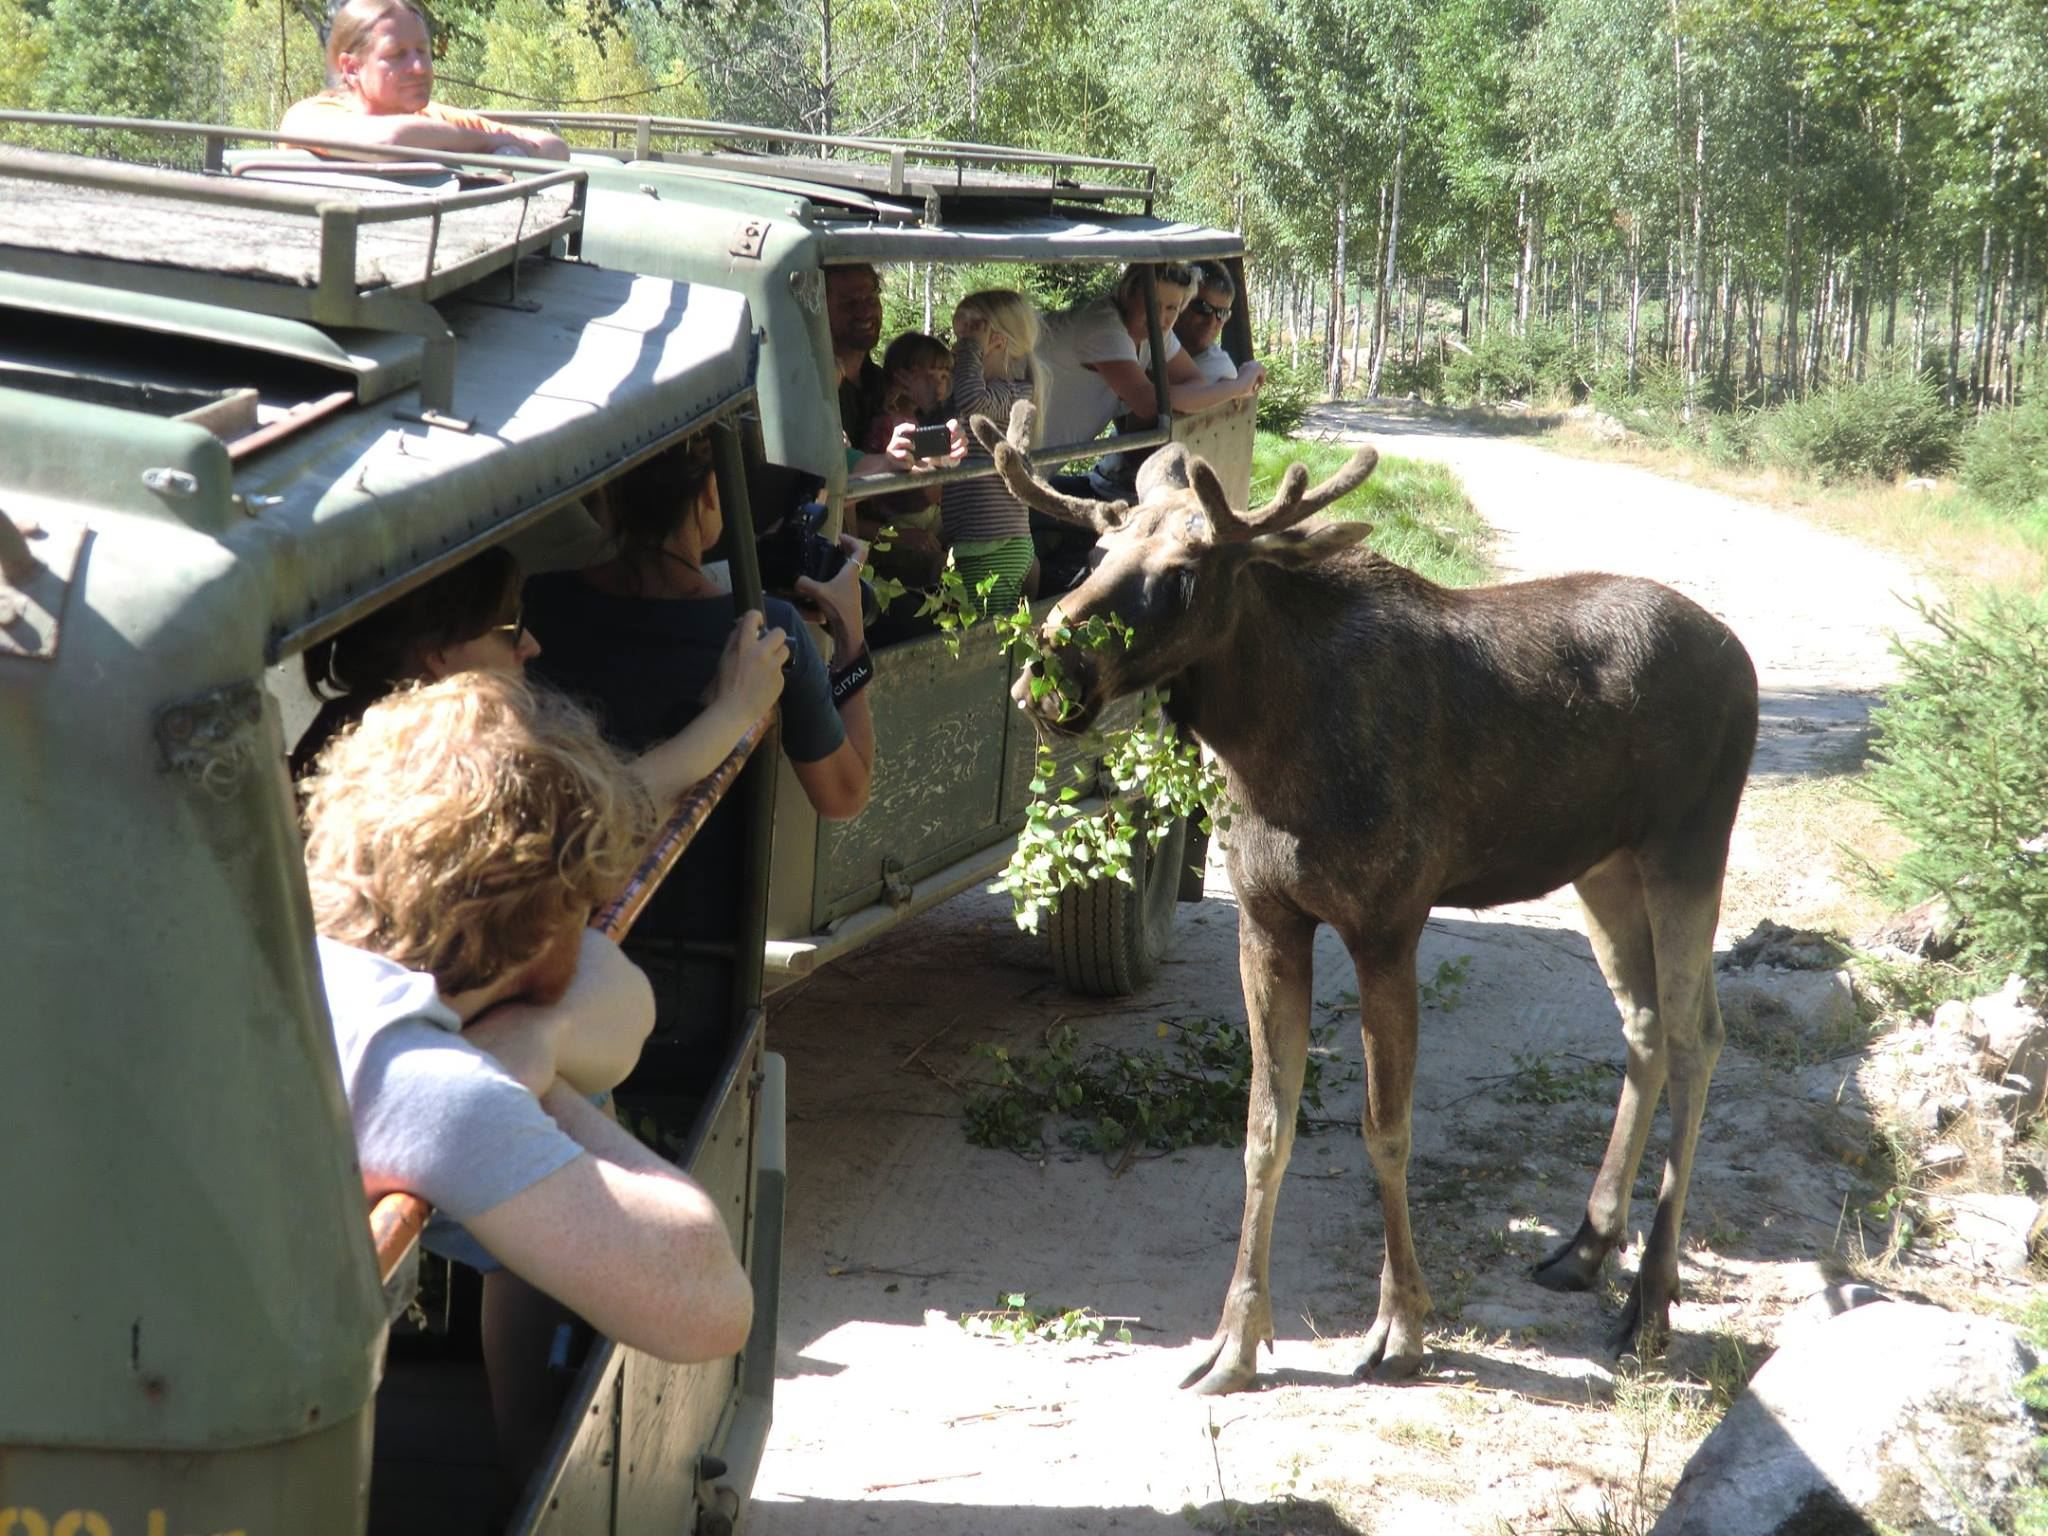 Glasriket Moosepark